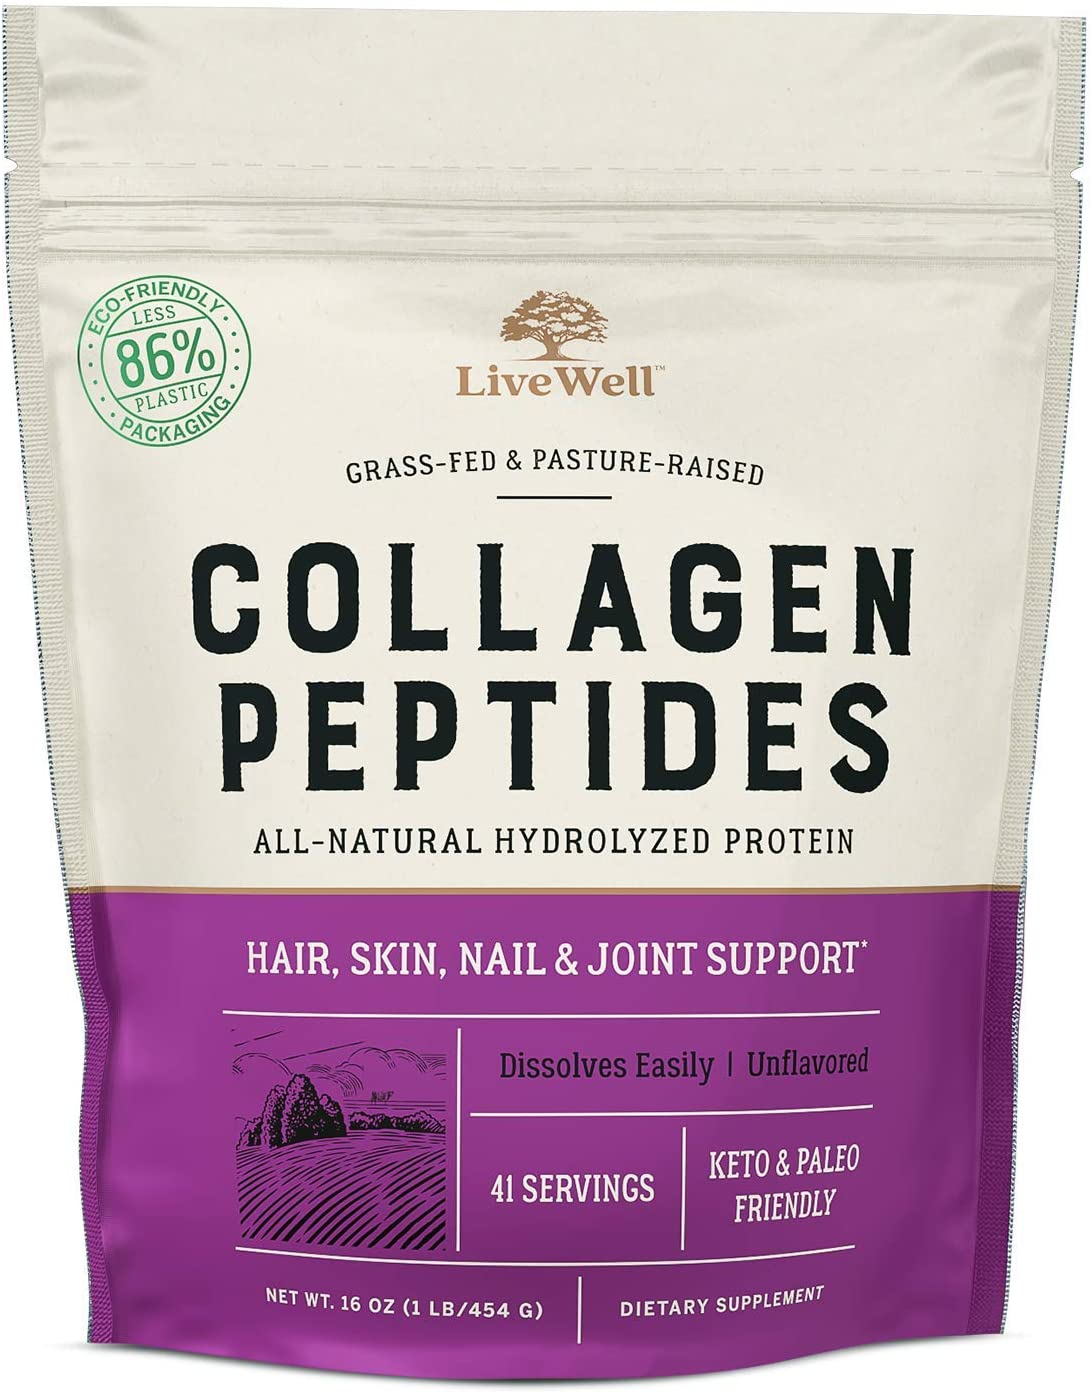 LiveWell Collagen Peptides